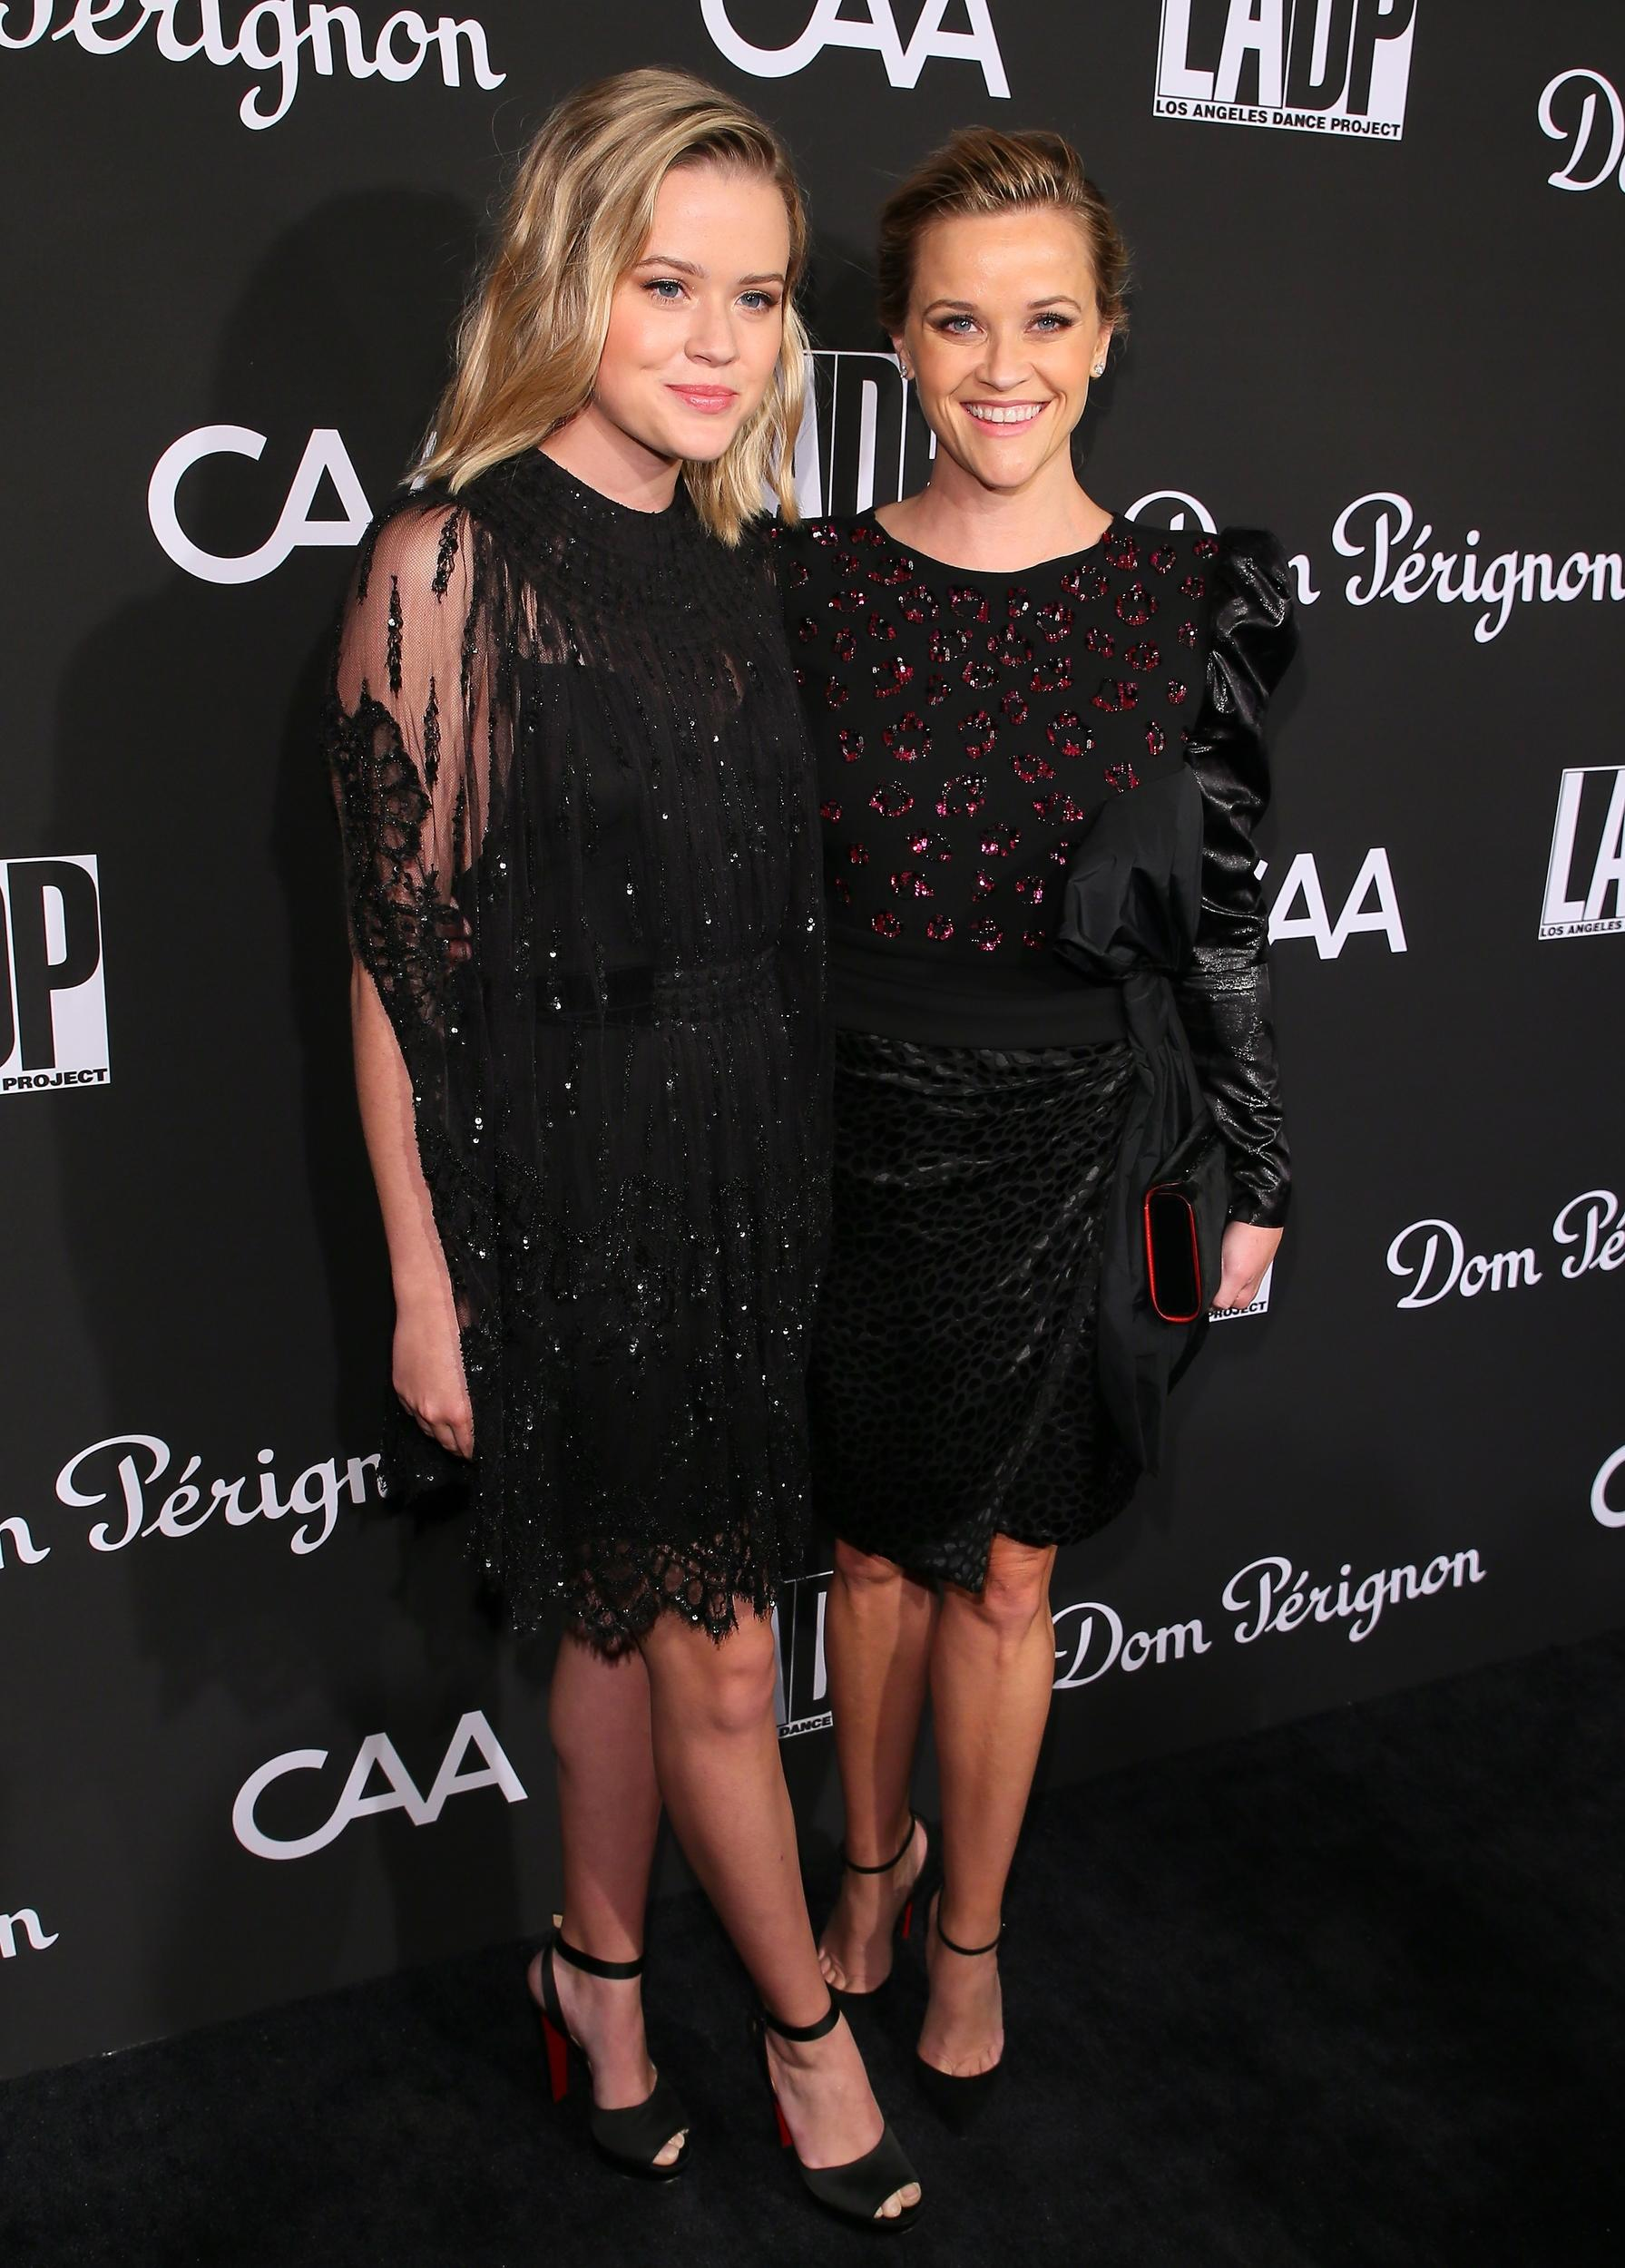 LOS ANGELES, CA - OCTOBER 20: Ava Elizabeth Phillippe and Reese Witherspoon attend the L.A. Dance Project's Annual Gala on October 20, 2018 in Los Angeles, California. (Photo by JB Lacroix/WireImage)